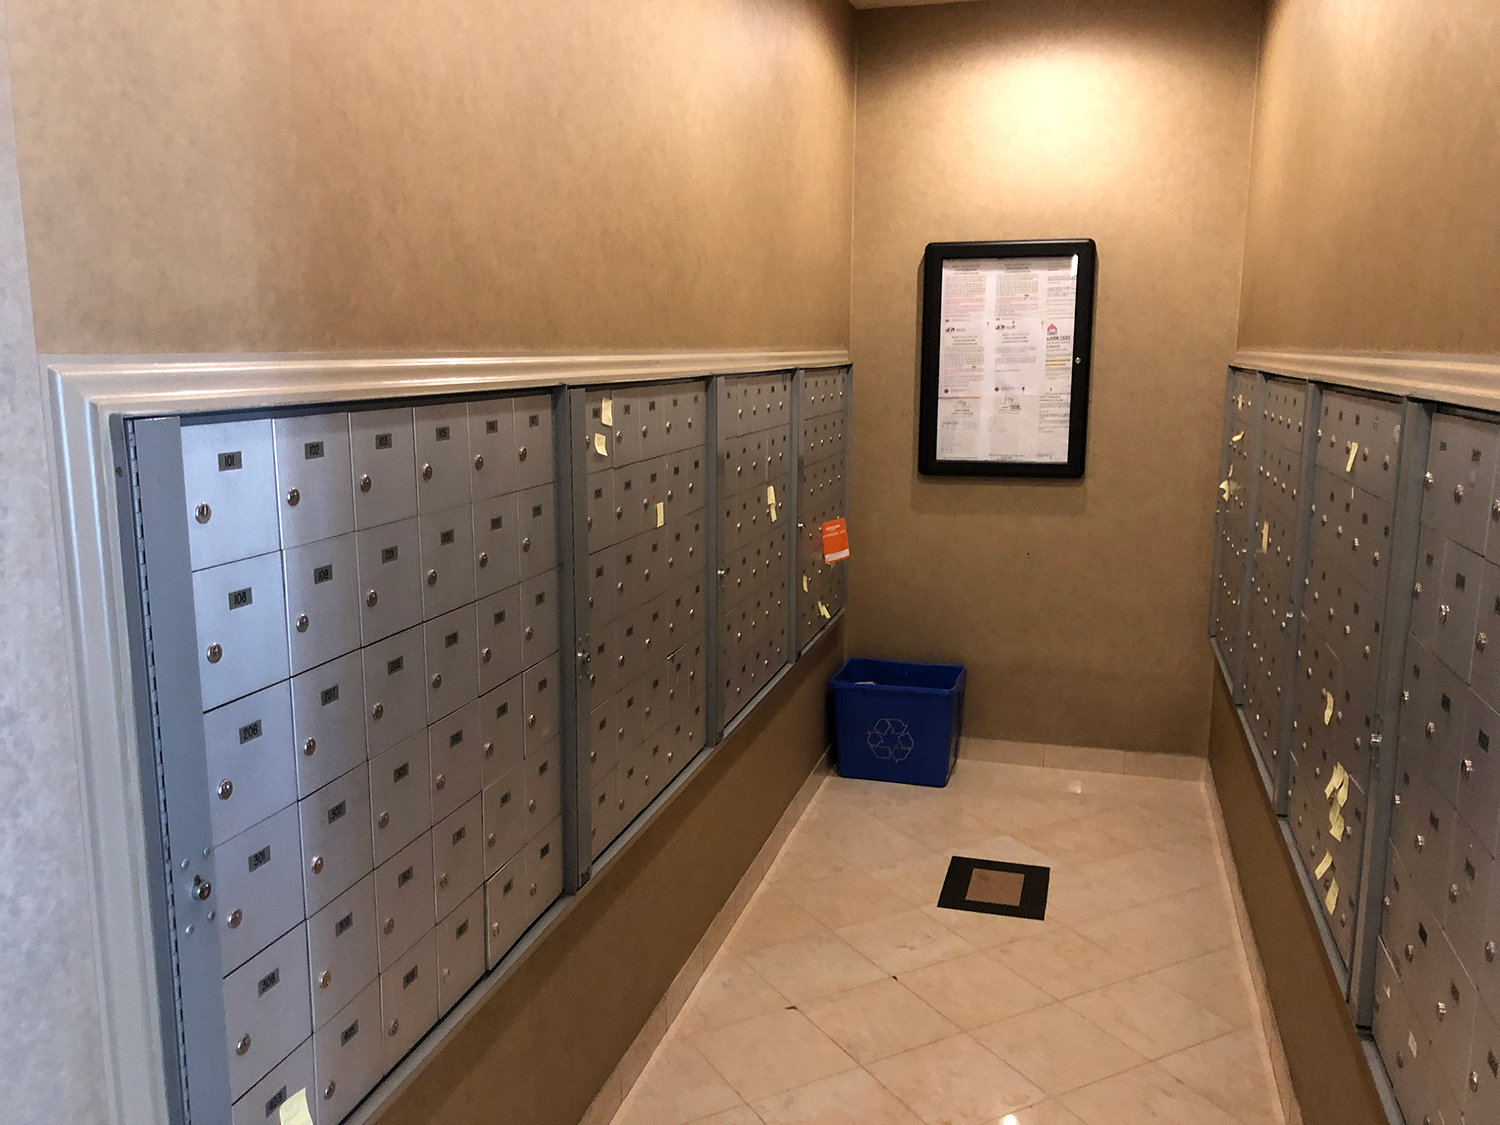 The Lions Mail Room!